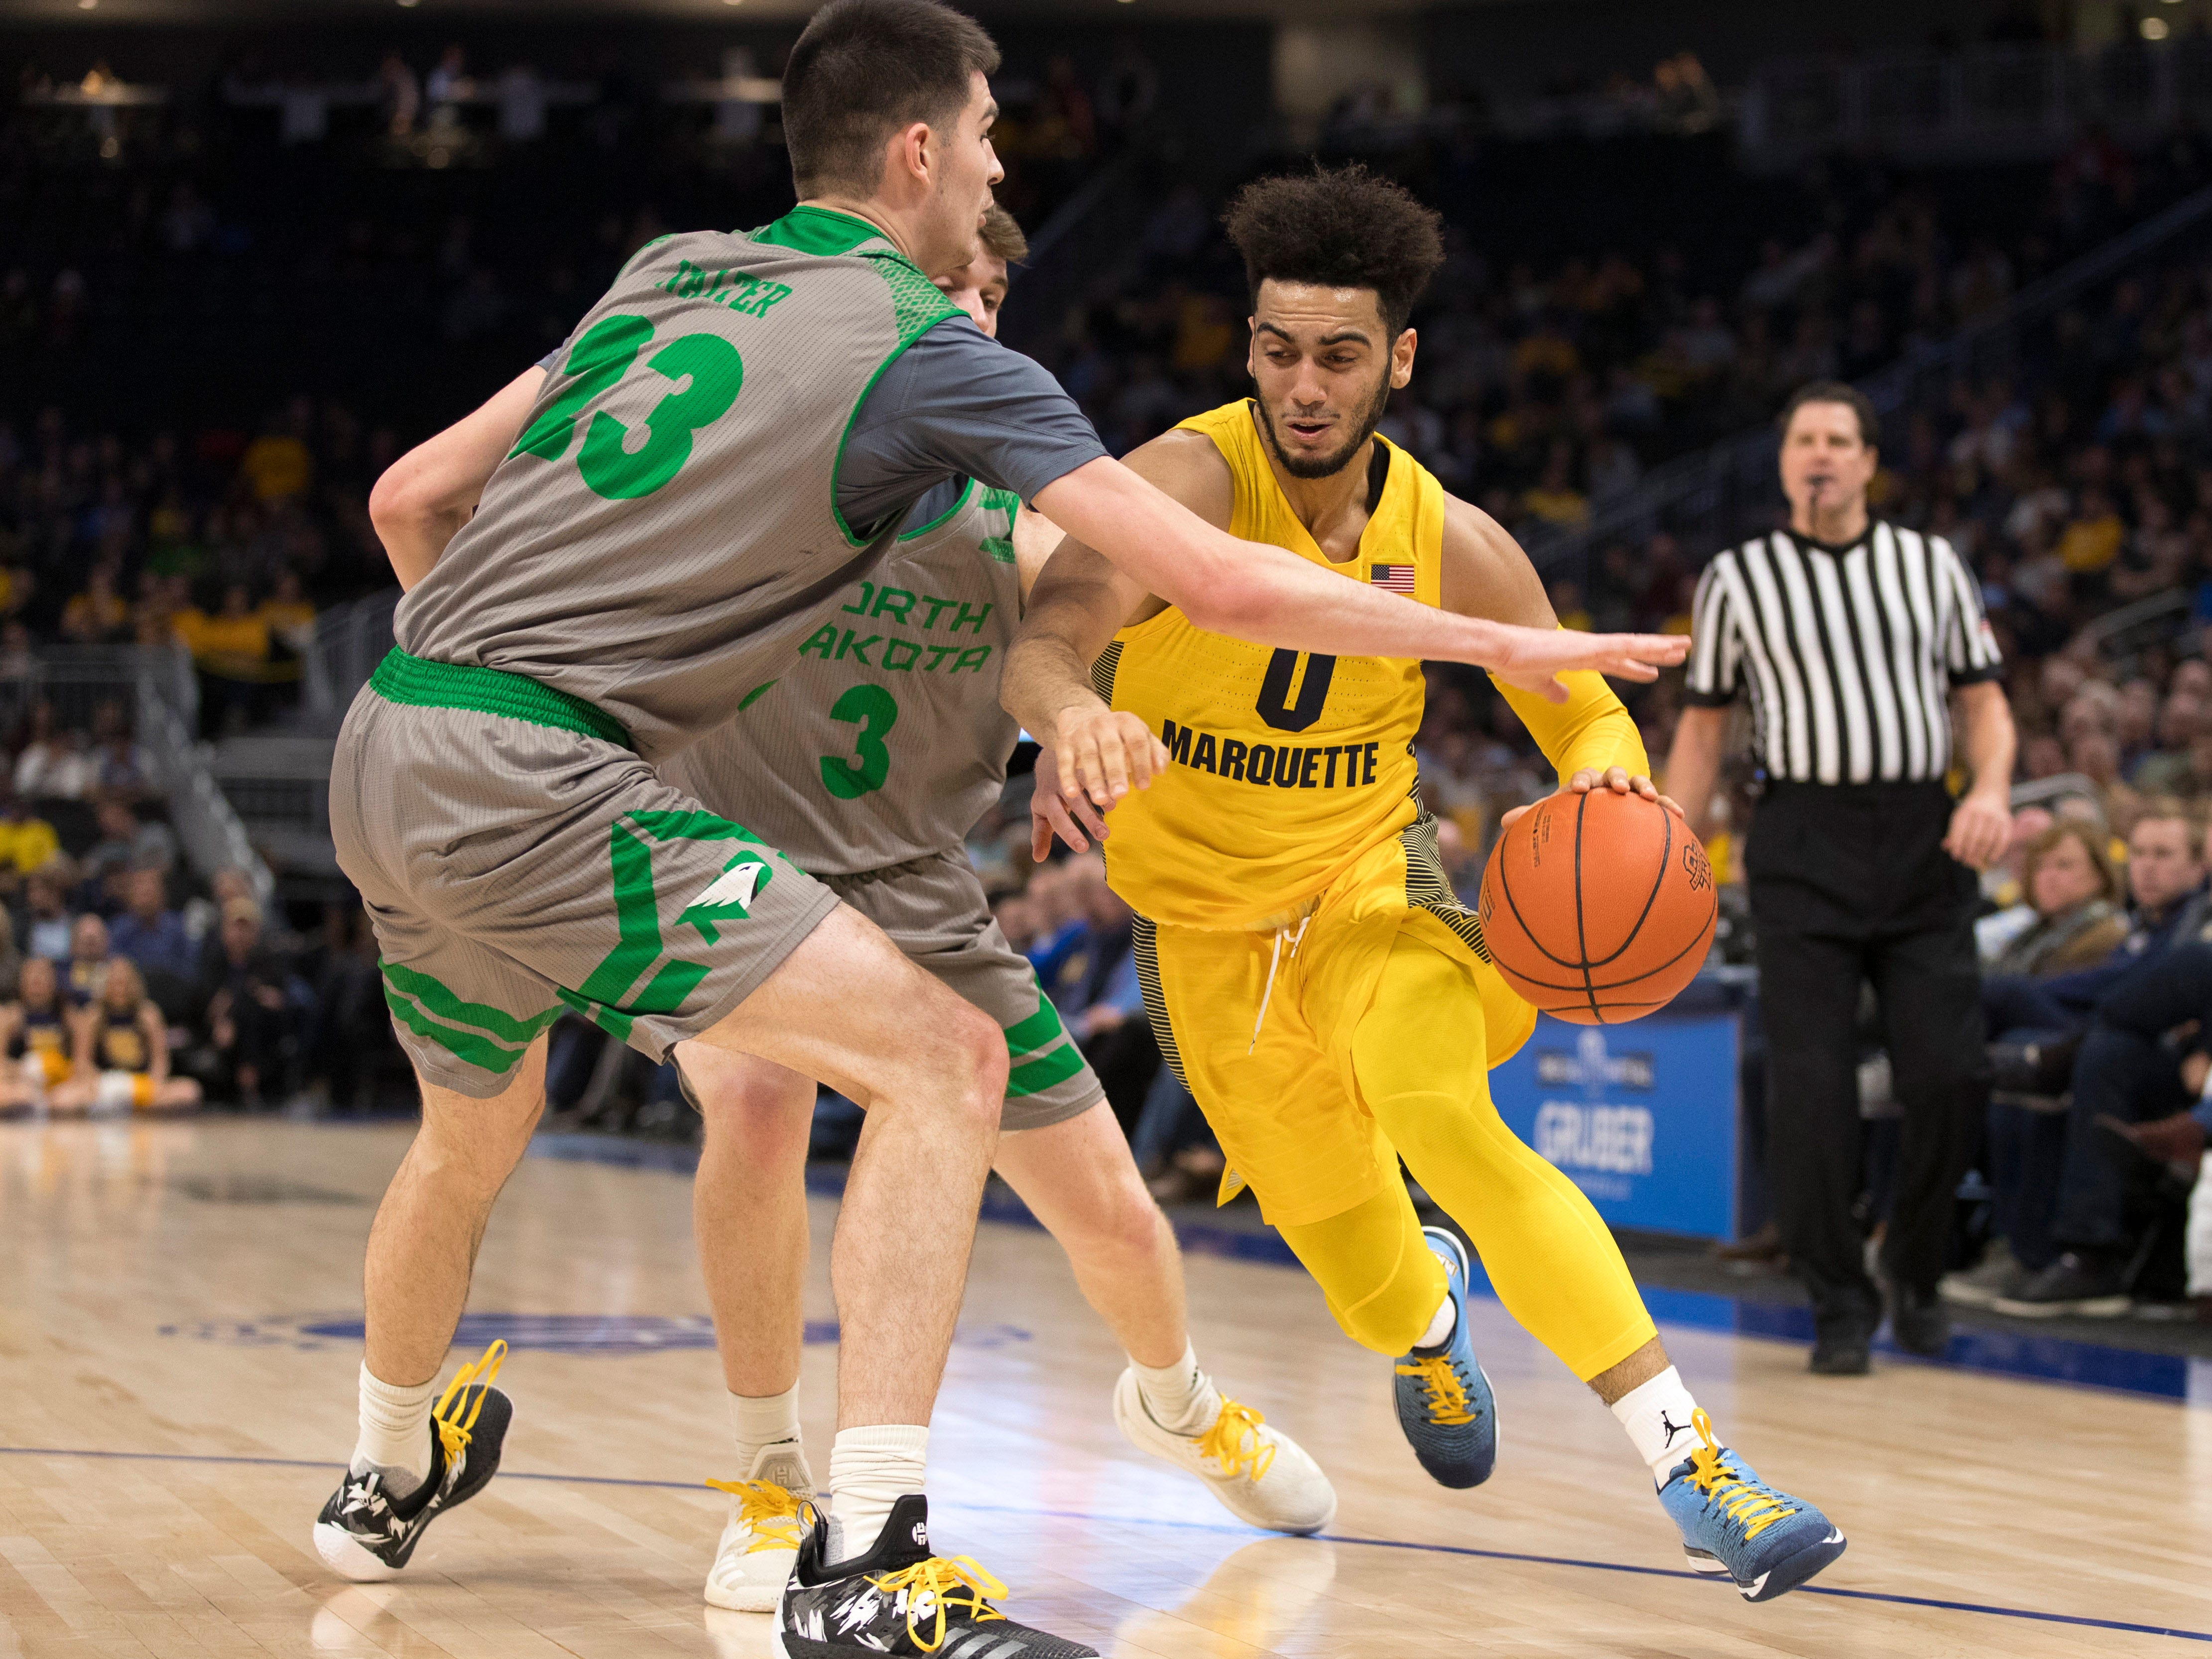 Golden Eagles guard Markus Howard drives for the basket against Fighting Hawks forward Kienan Walter (23) and Billy Brown during the first half.